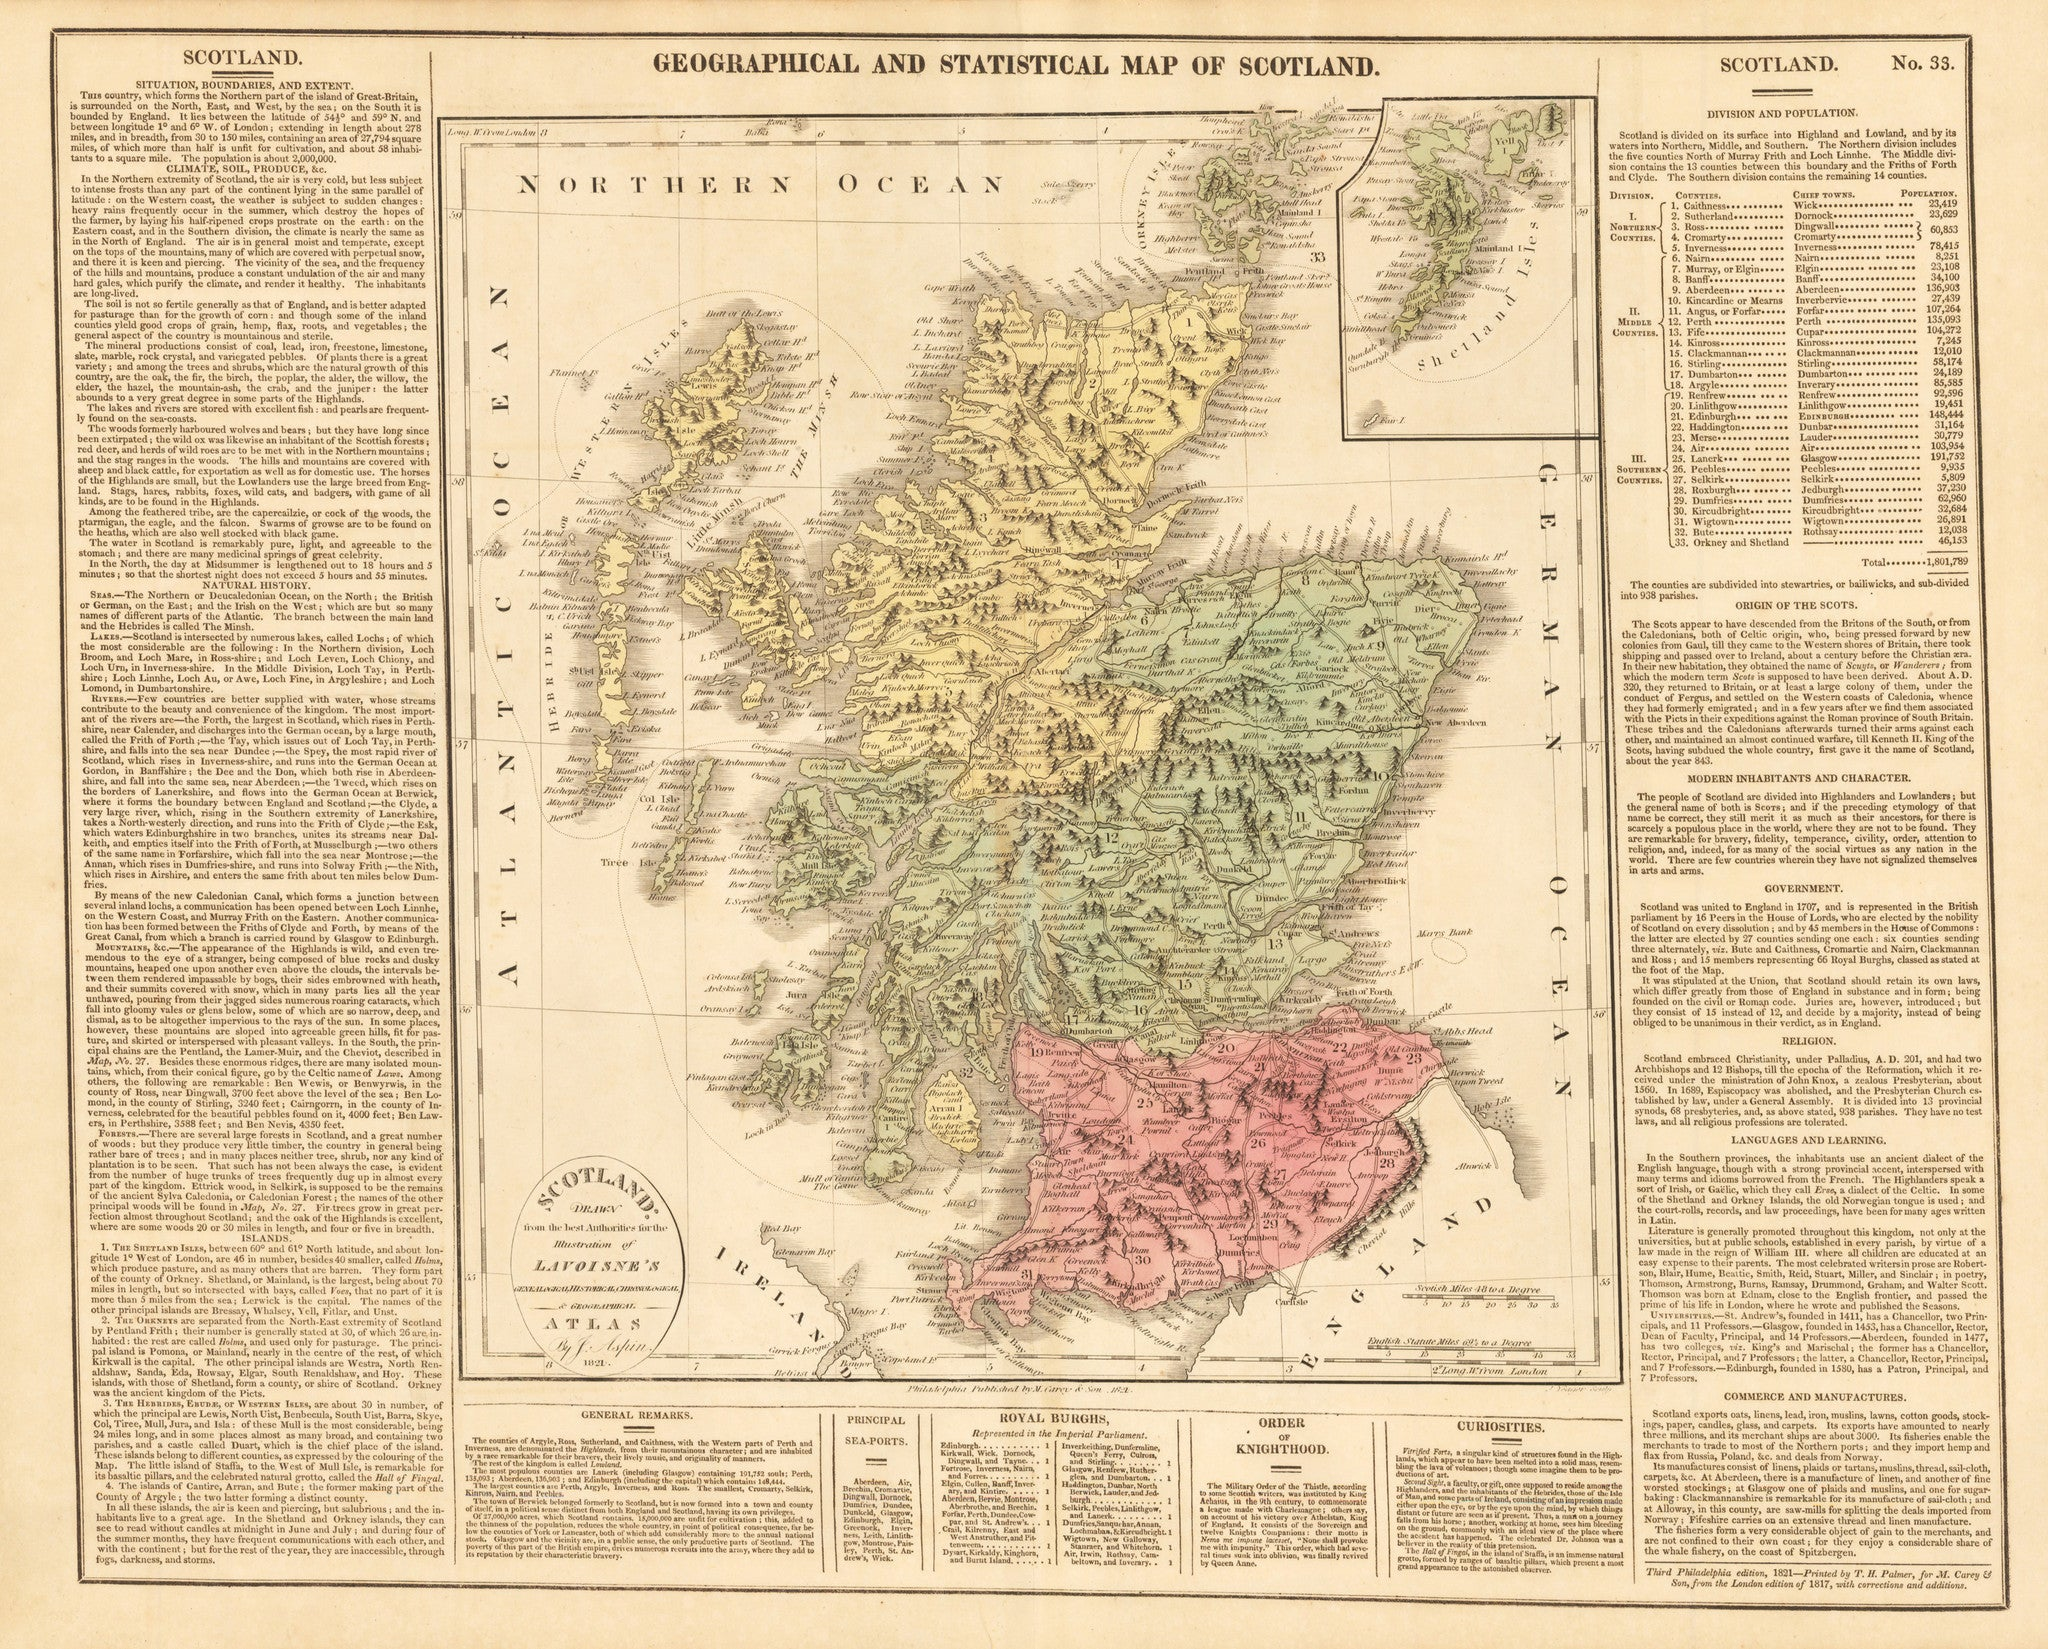 1821 Geographical and Historical Map of Scotland. Scotland: Drawn from the Best Authorities for the Illustration of Lavoisne's Genealogical, Historical, Chronological & Geographical ATLAS.